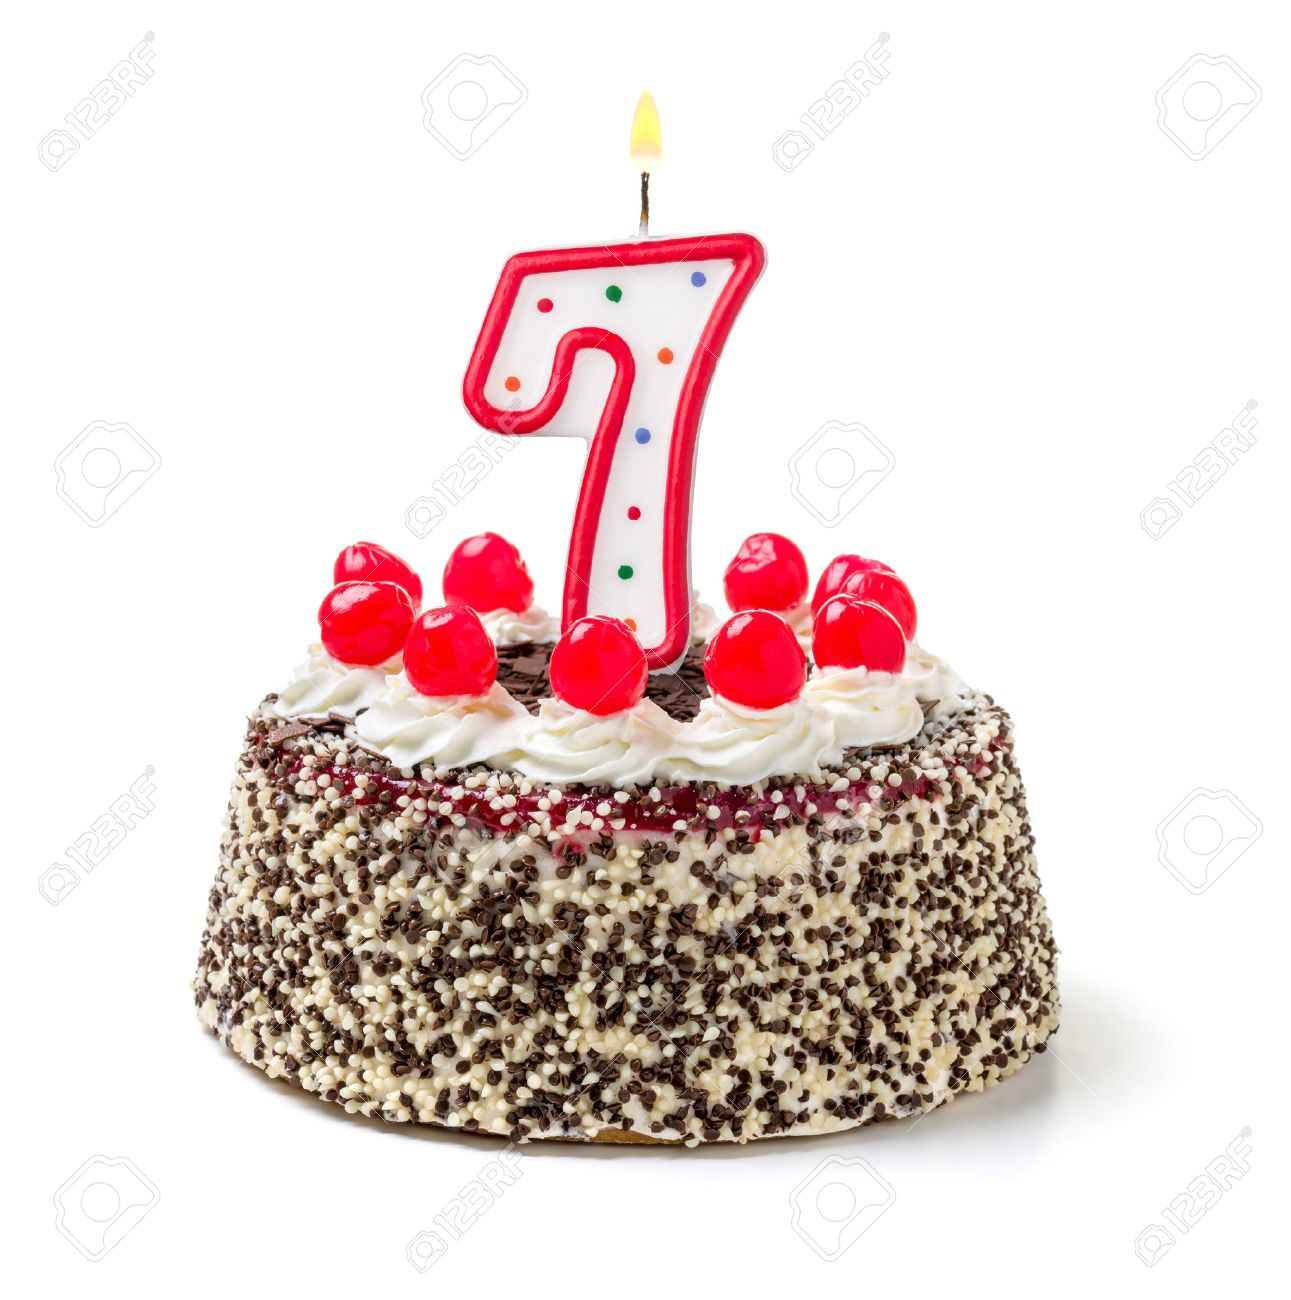 Birthday Cake With Burning Candle Number 7 Stock Photo